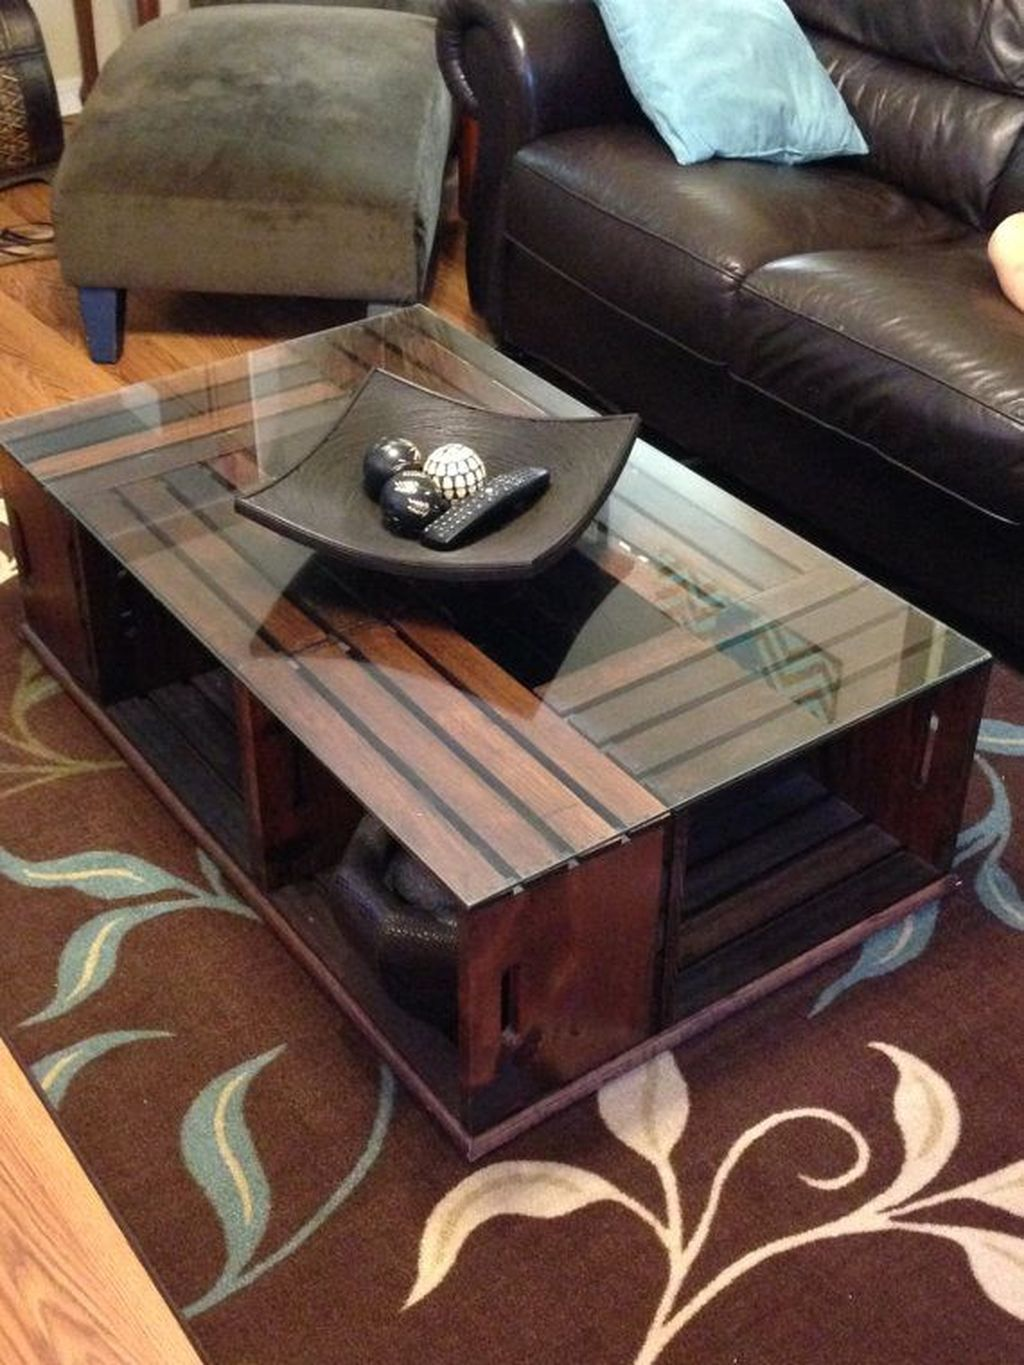 30 Crate Coffee Table Ideas 16 Furniture Inspiration Wood Crate Coffee Table Crate Coffee Table Cool Coffee Tables